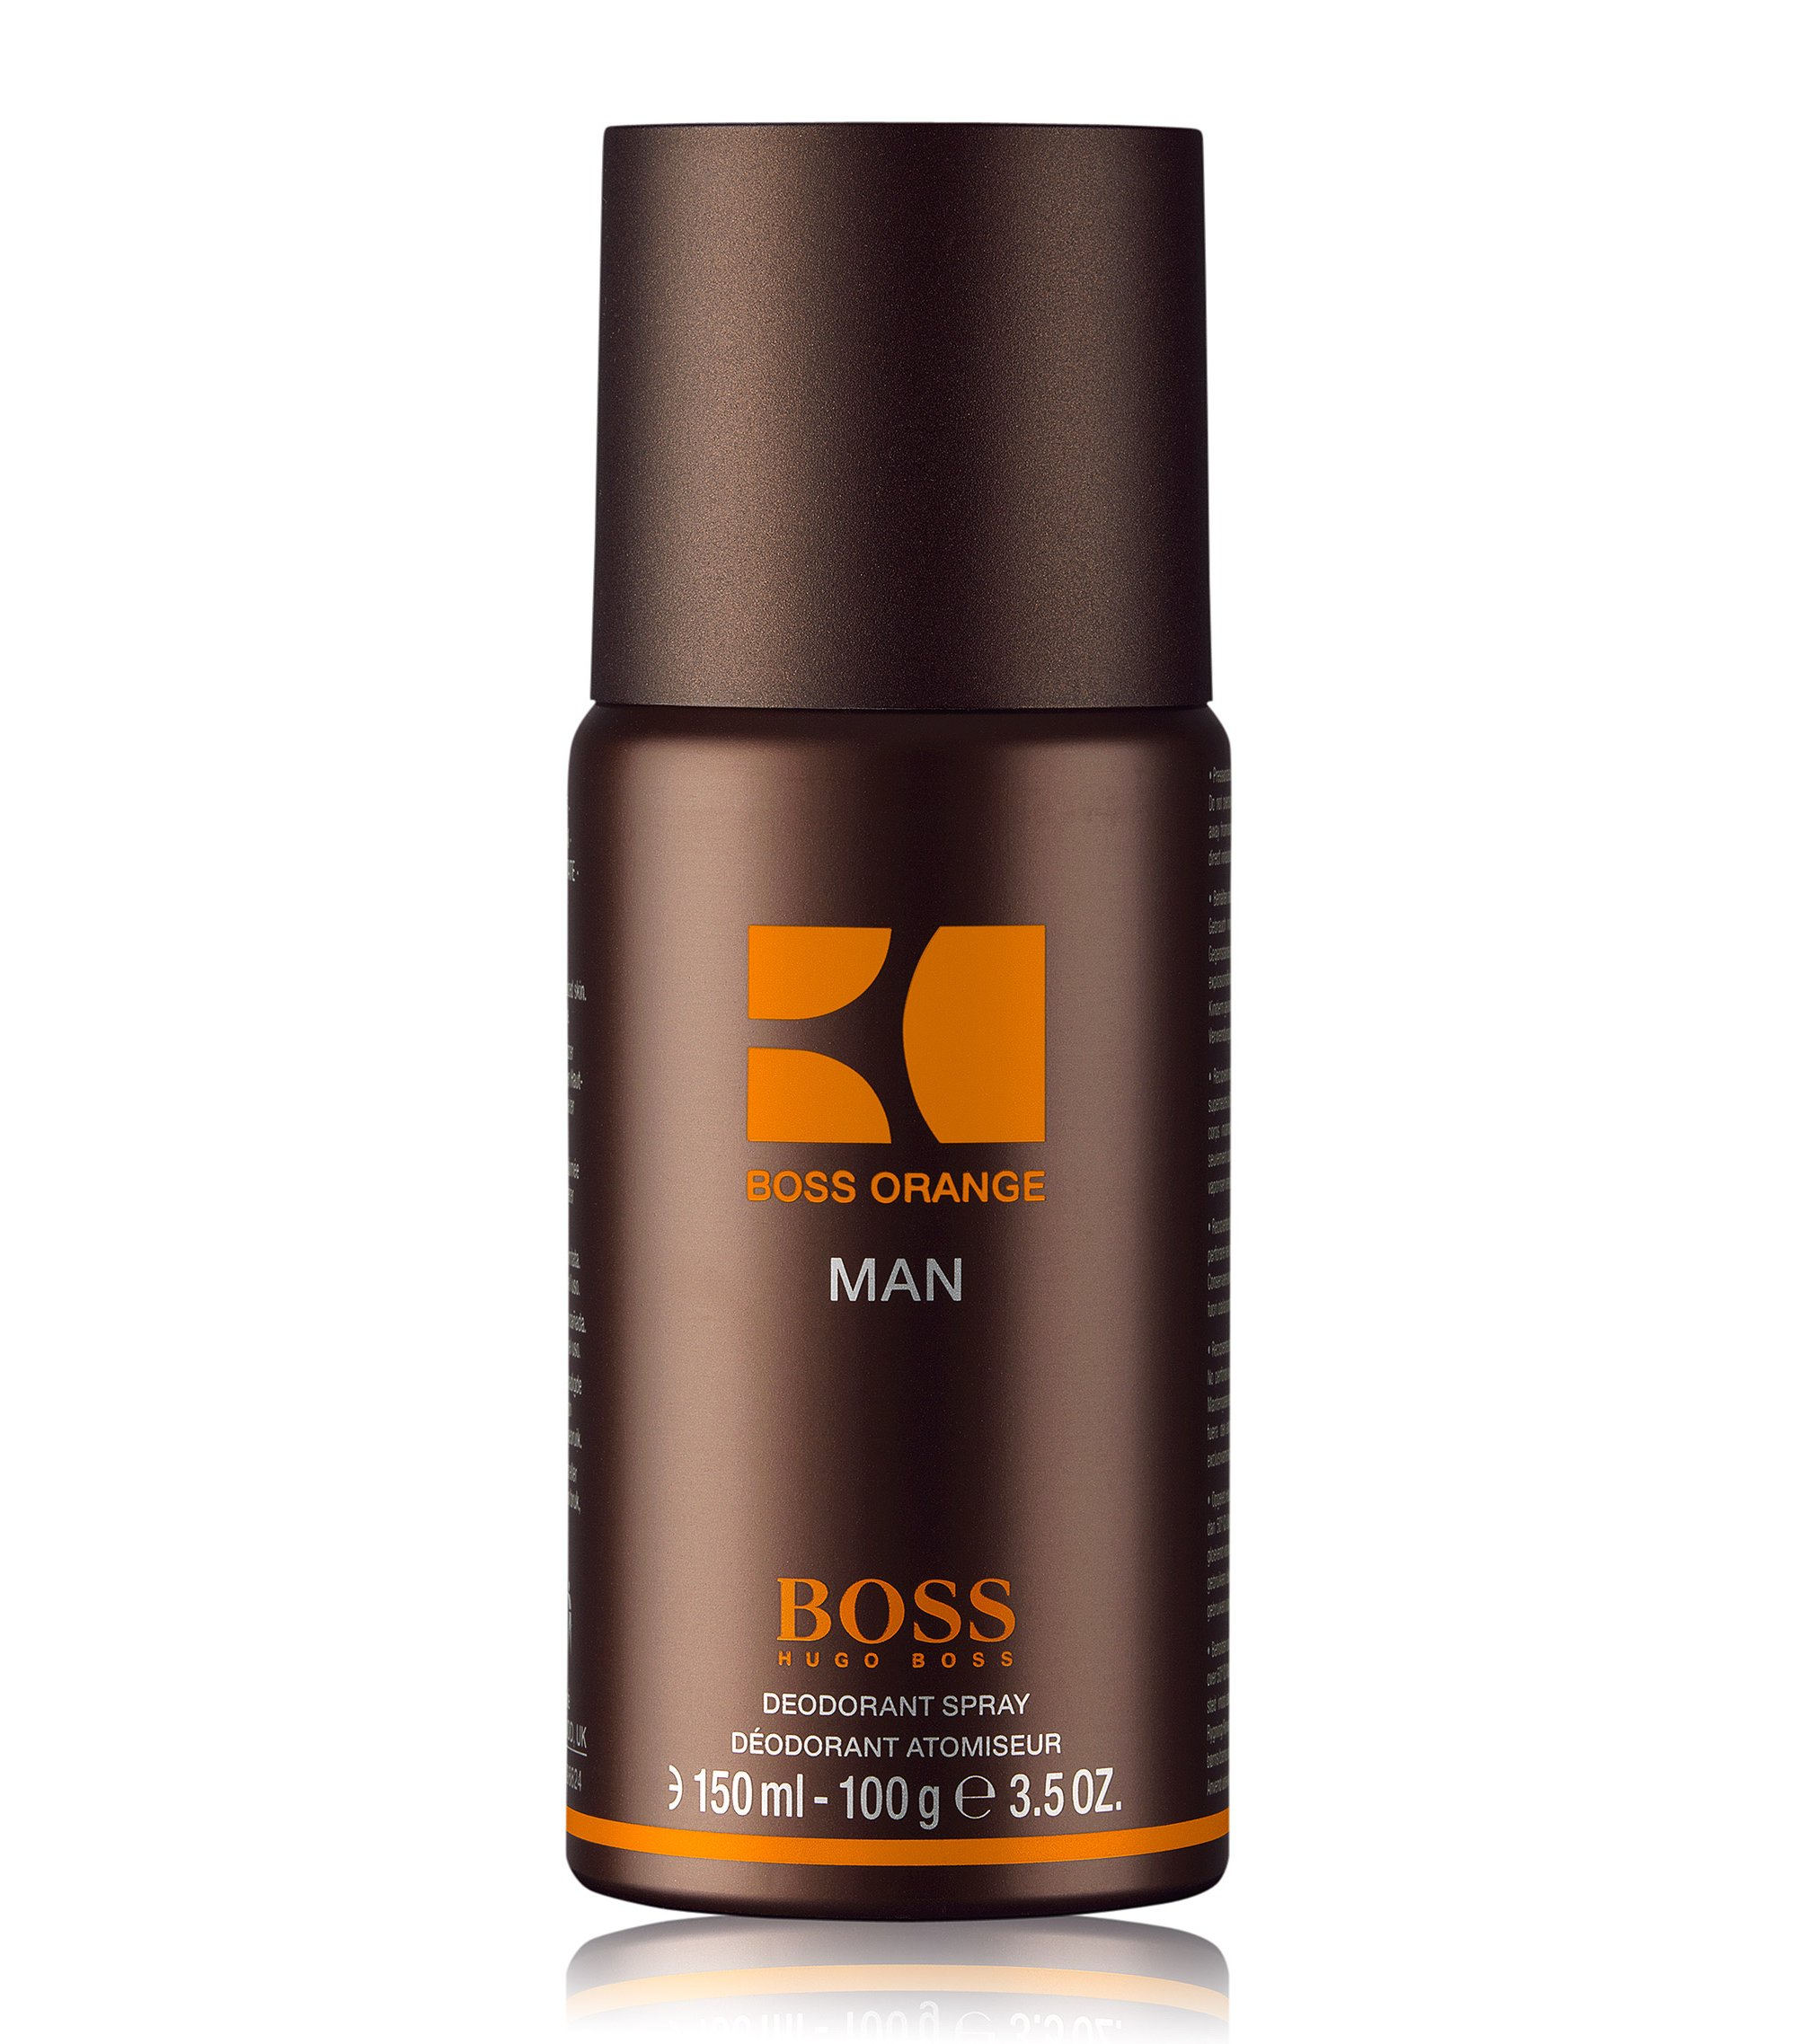 BOSS Orange Man Deospray 150 ml, Assorted-Pre-Pack